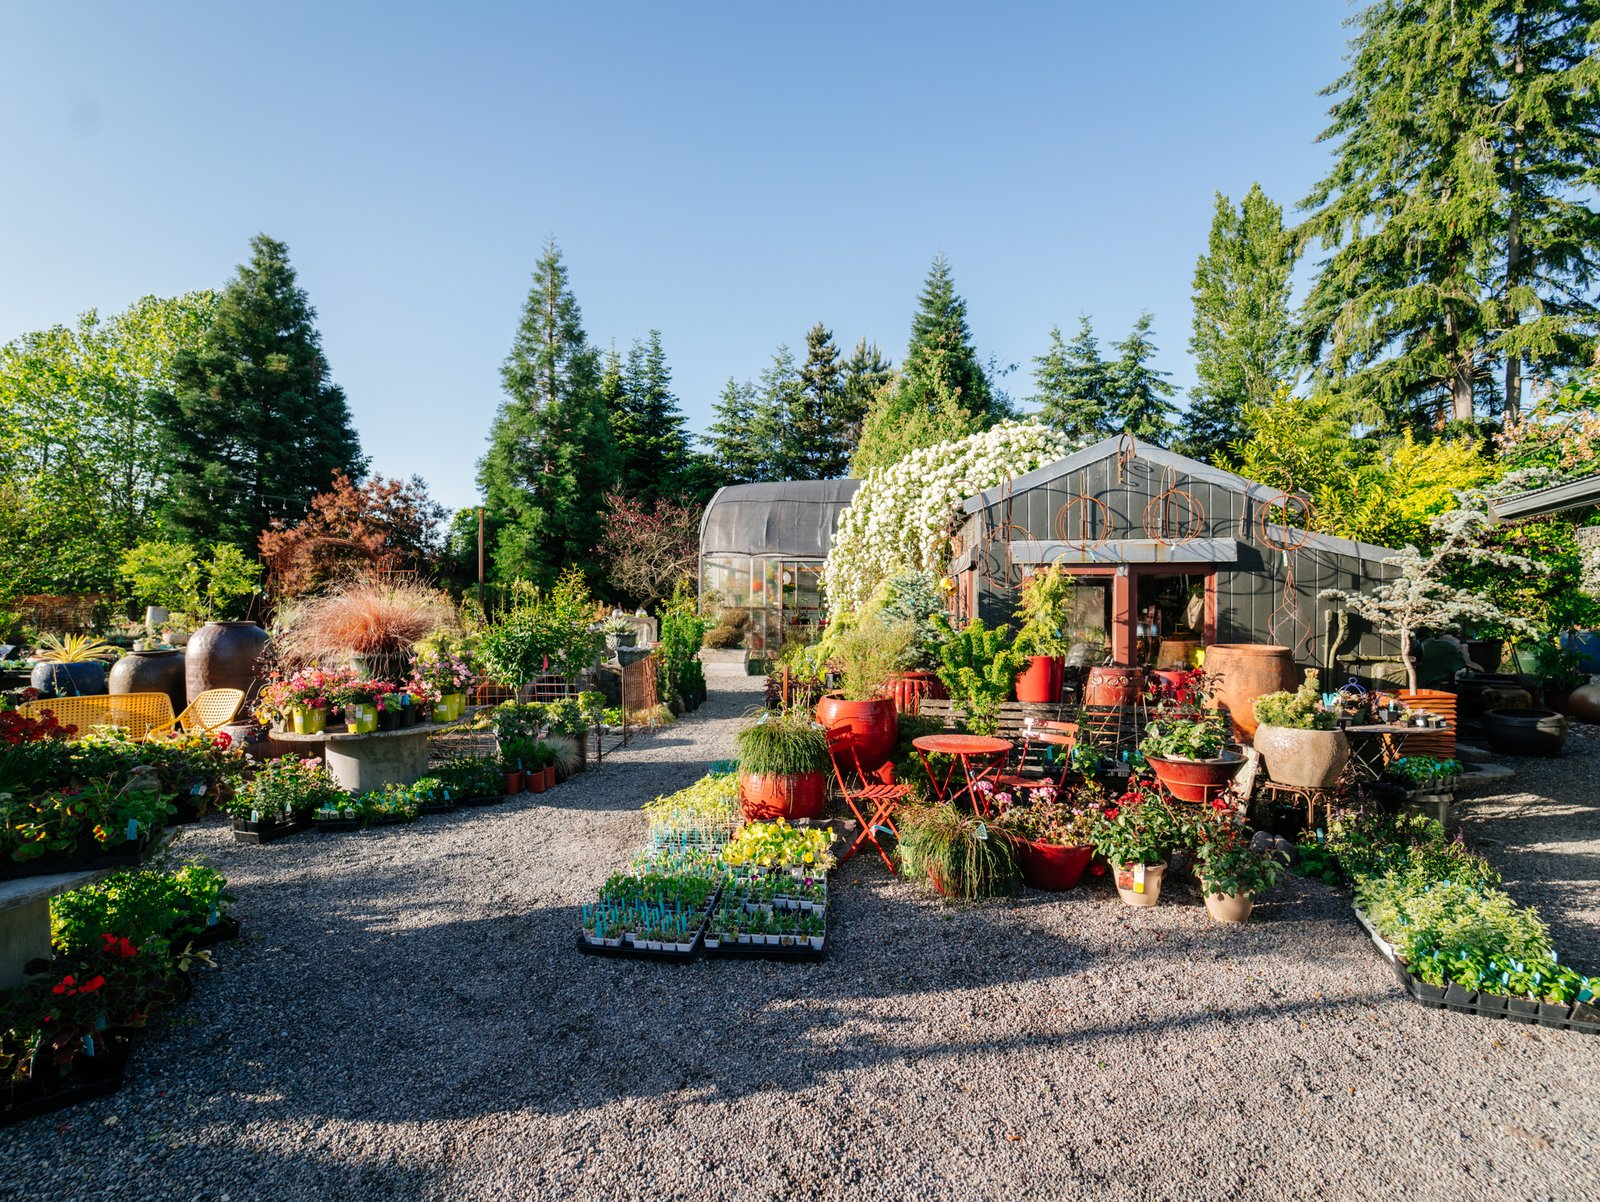 This 120-Year-Old Home With a Greenhouse Is a Gardener's Paradise